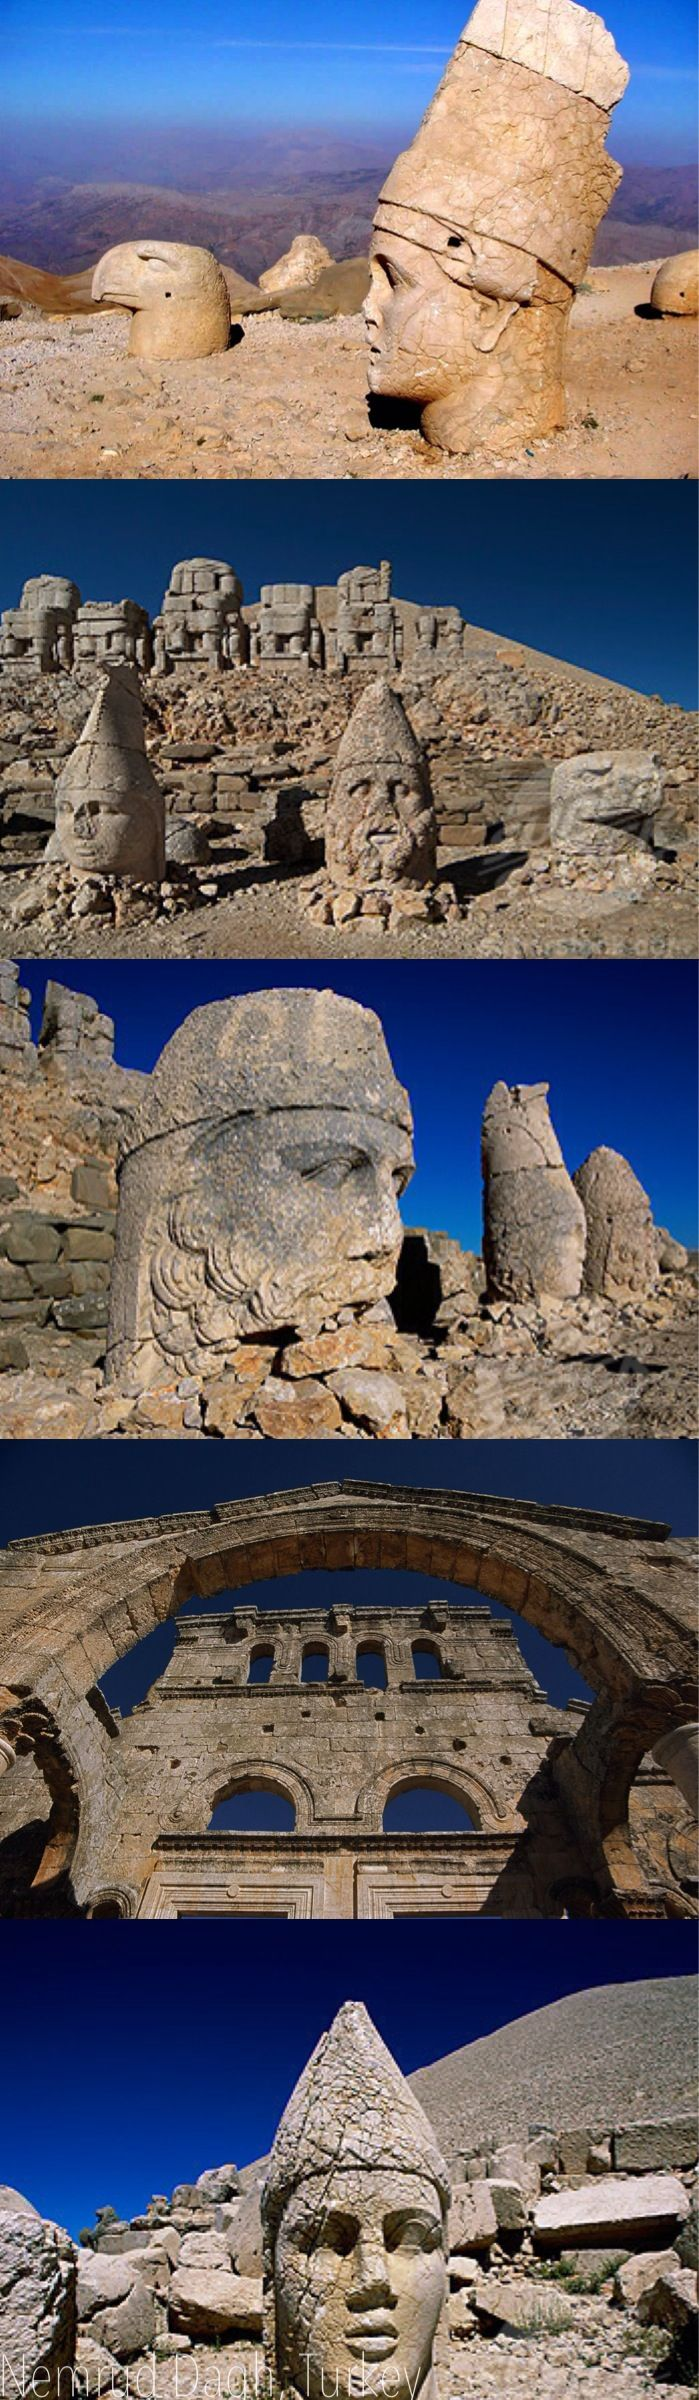 Nemrut, 2130 m mountain SE Turkey; at the summit, a number of large statues are erected around a royal tomb from the 1st century BC. These statues were once seated, with names of each god inscribed on them. The heads of the statues have at some stage been removed from their bodies, and they are now scattered throughout the site.